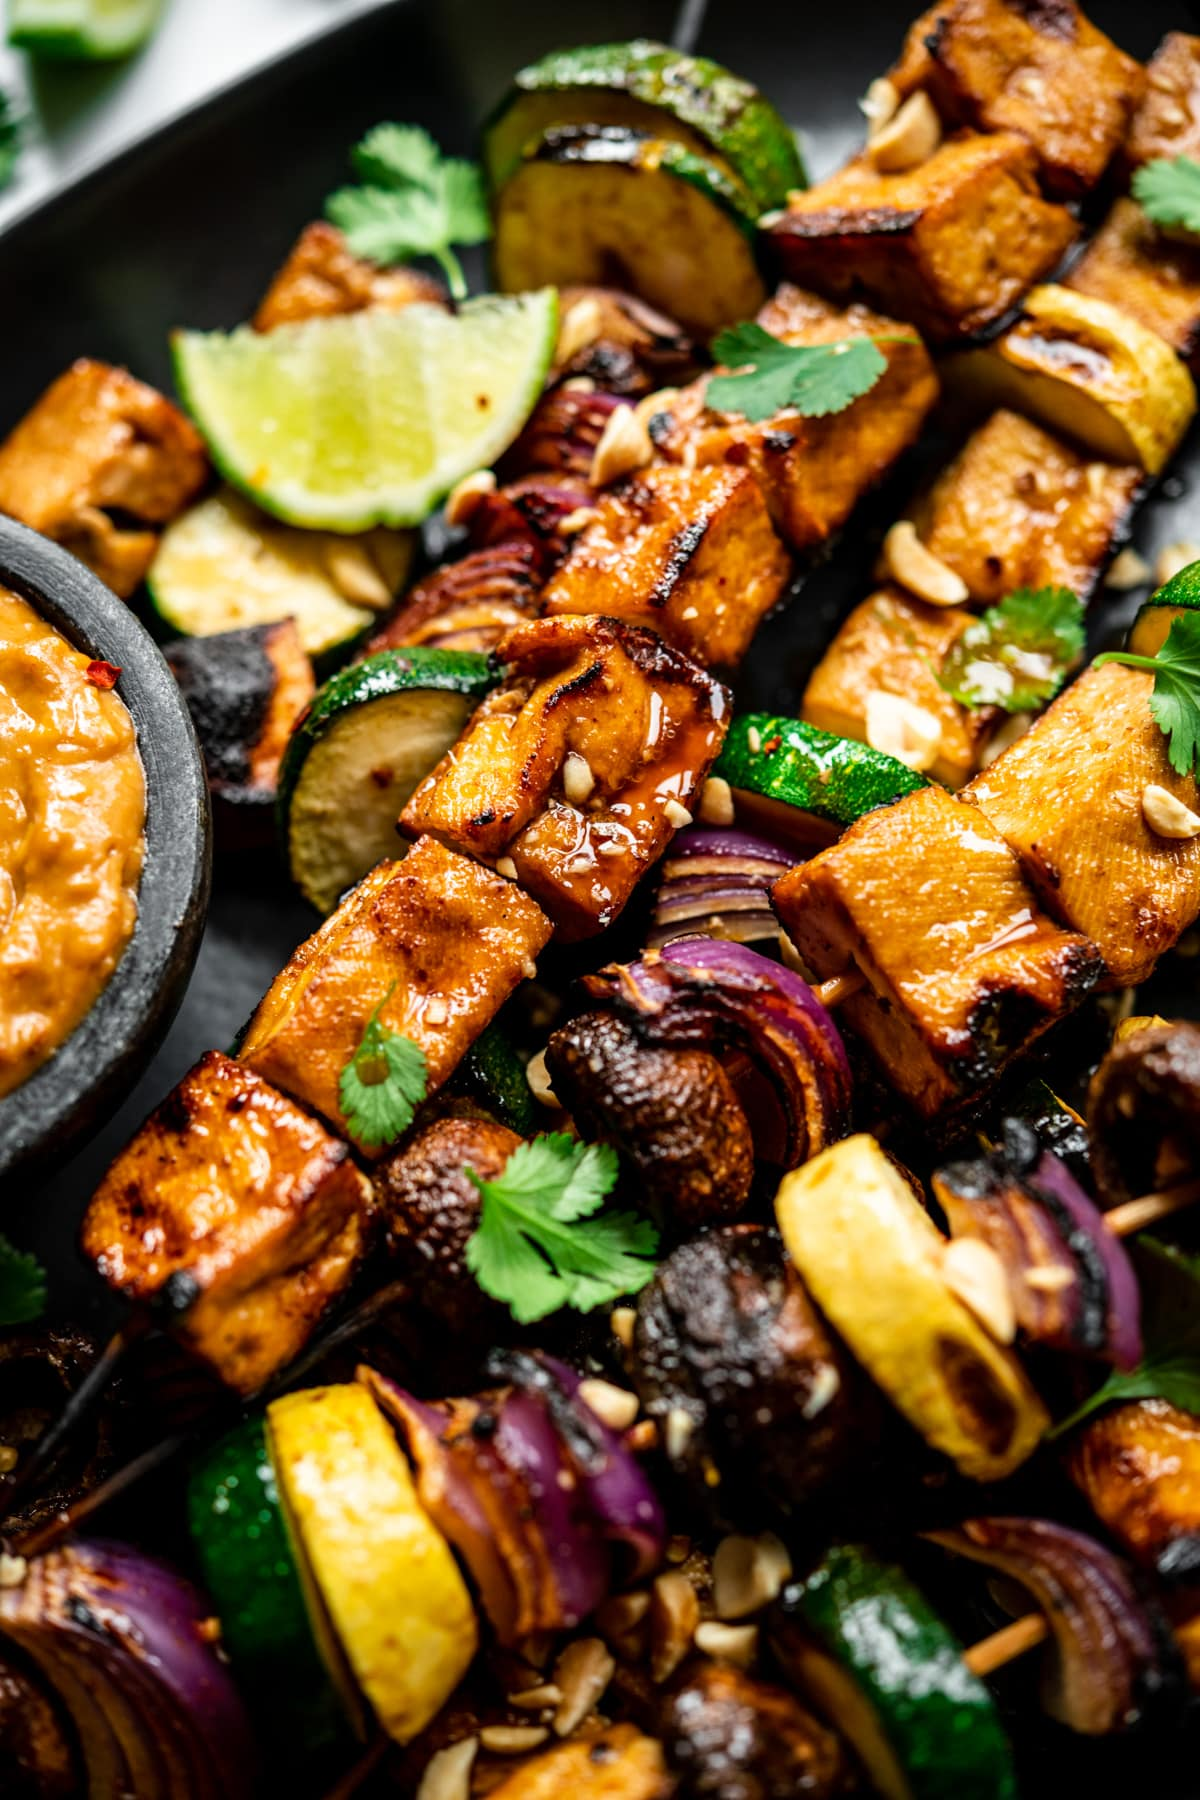 close up view of grilled tofu kebabs with vegetables on a platter.